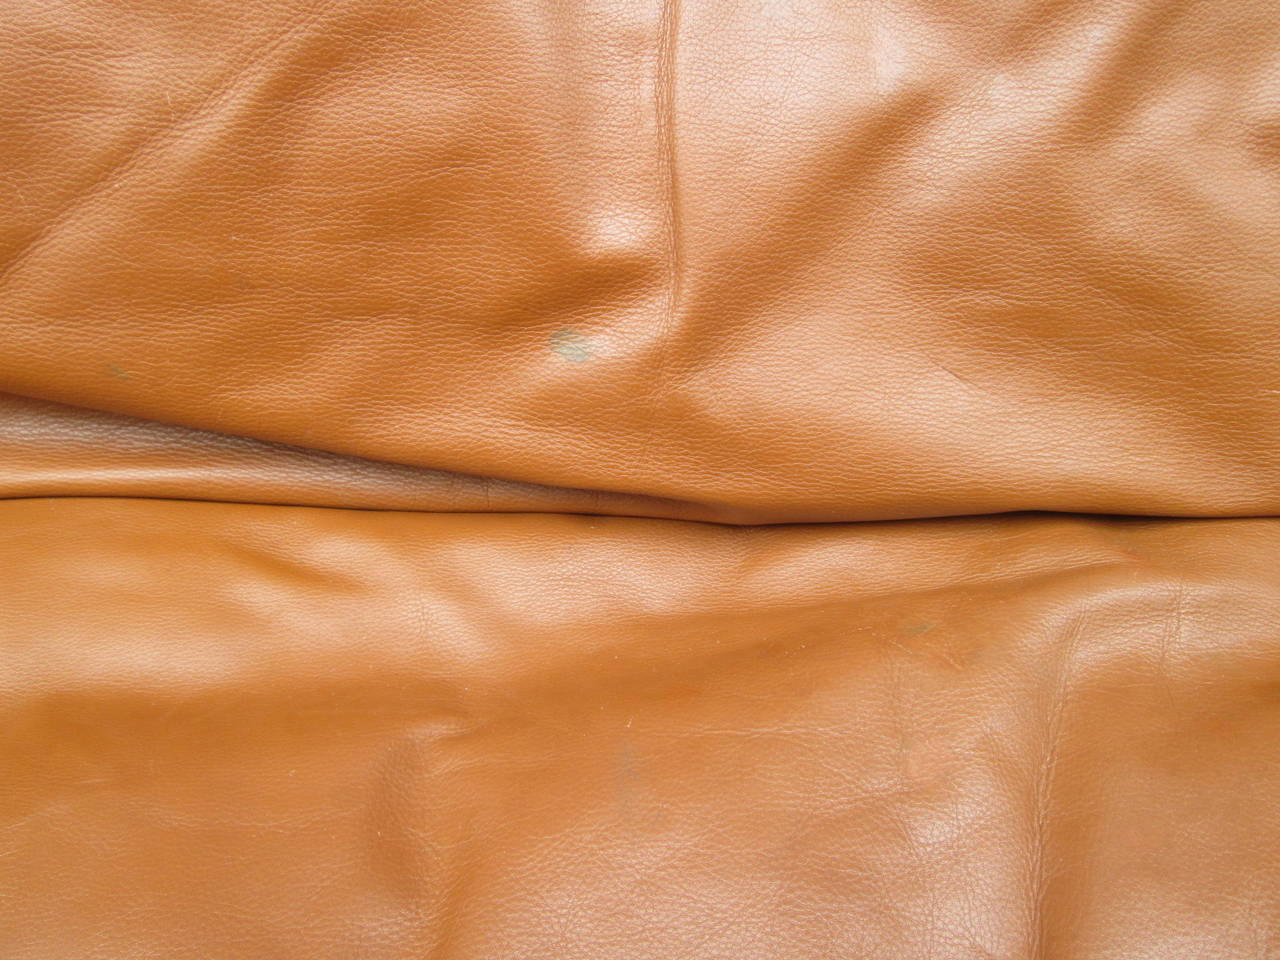 Late 20th Century Leather Convertible Sofa by De Sede